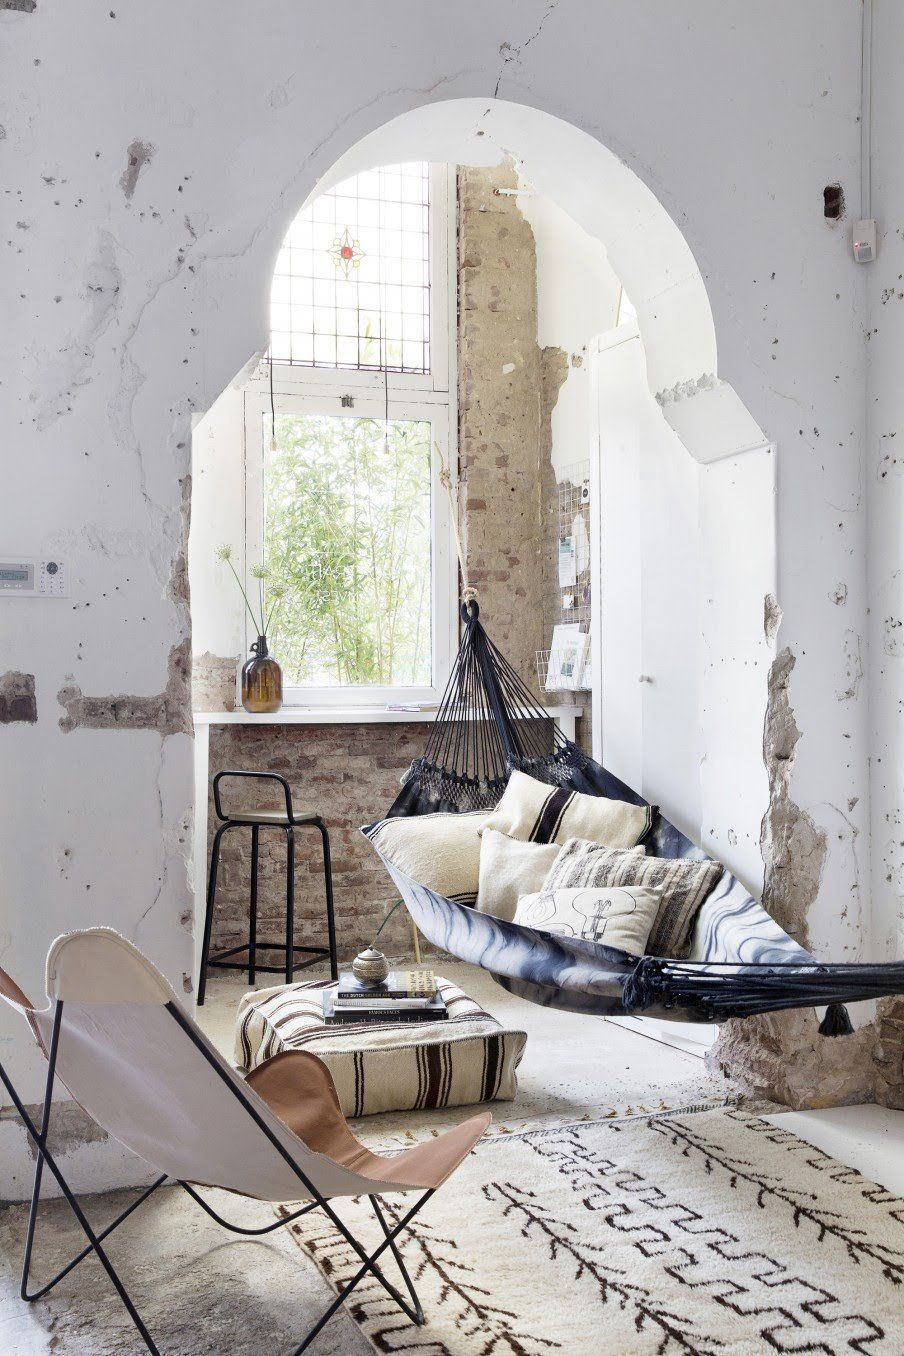 Pin by colleen hart on decor pinterest spaces interiors and walls